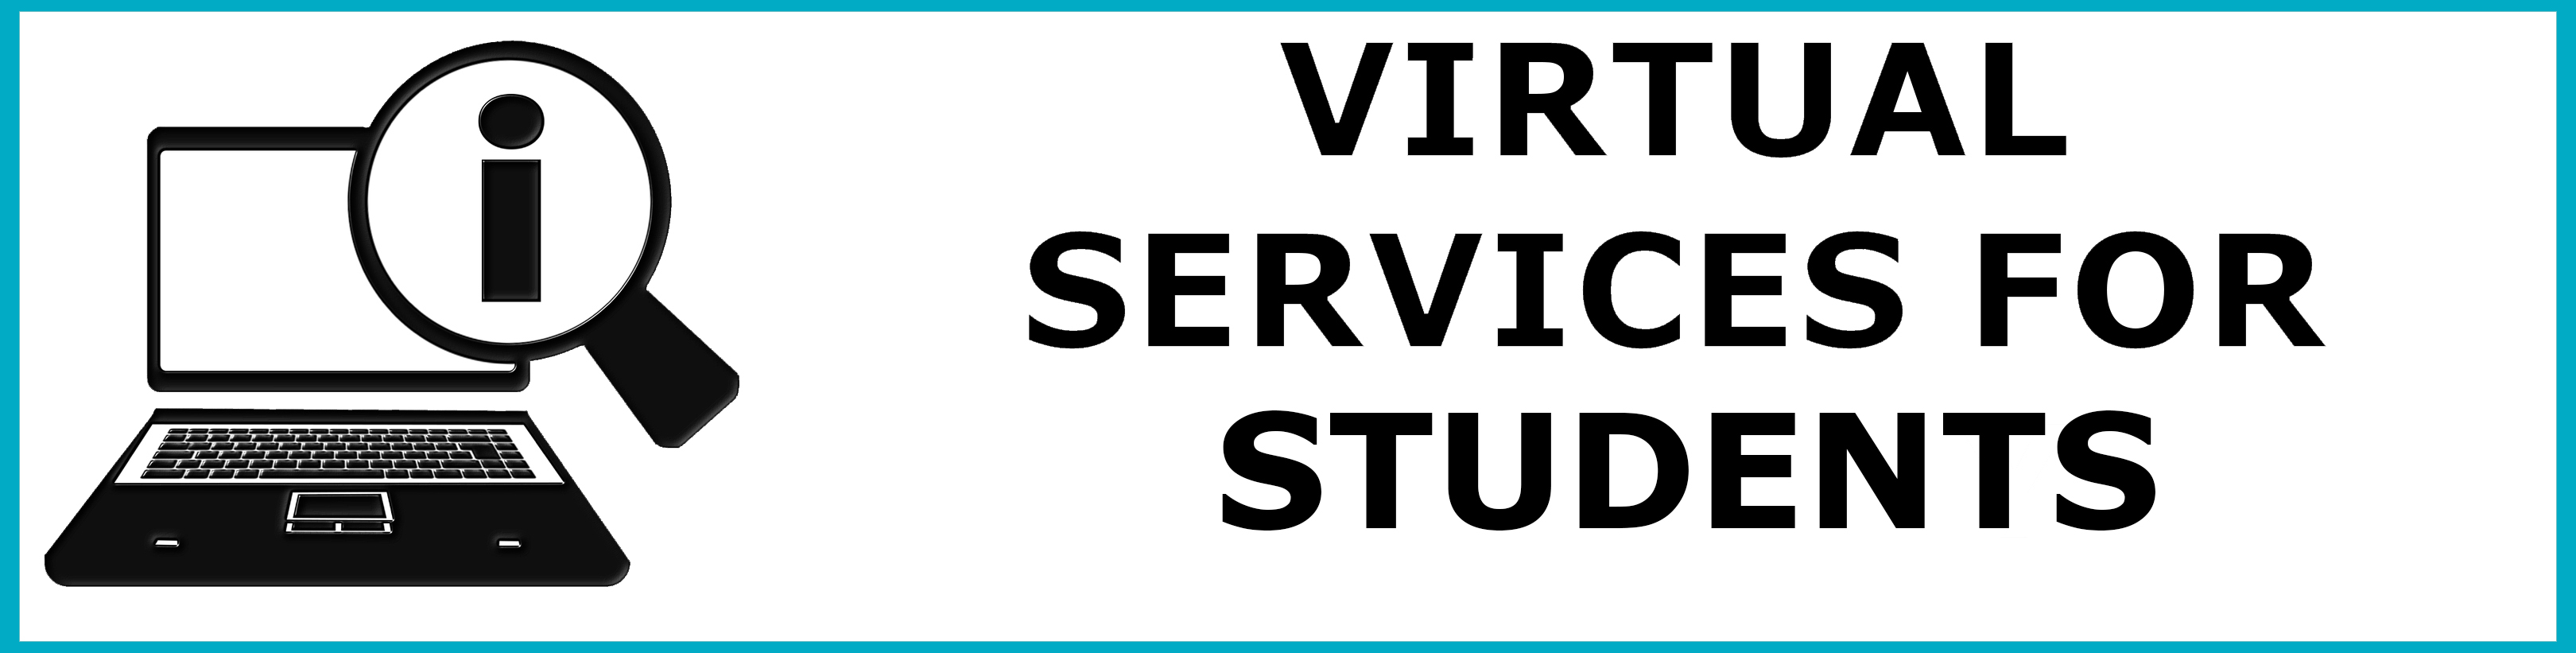 button for virtual services for students